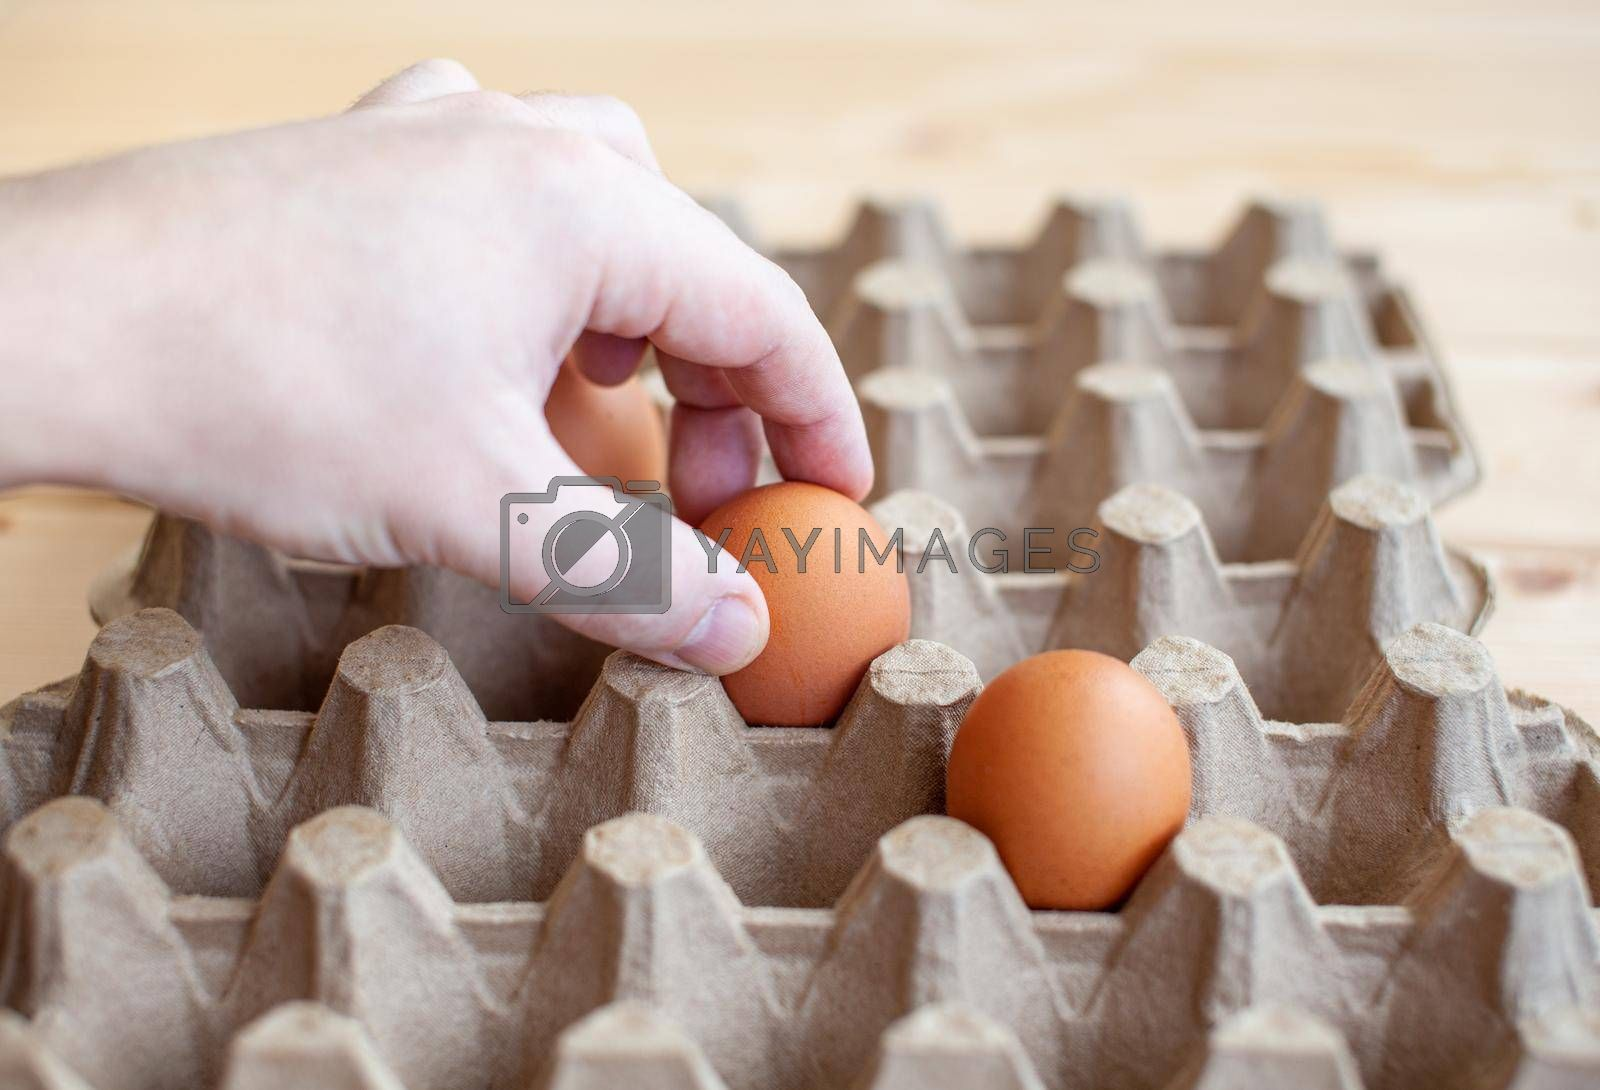 A man takes a brown egg from a cardboard bag with his hand, a chicken egg in his hand for cooking, a tray for carrying and storing fragile eggs.